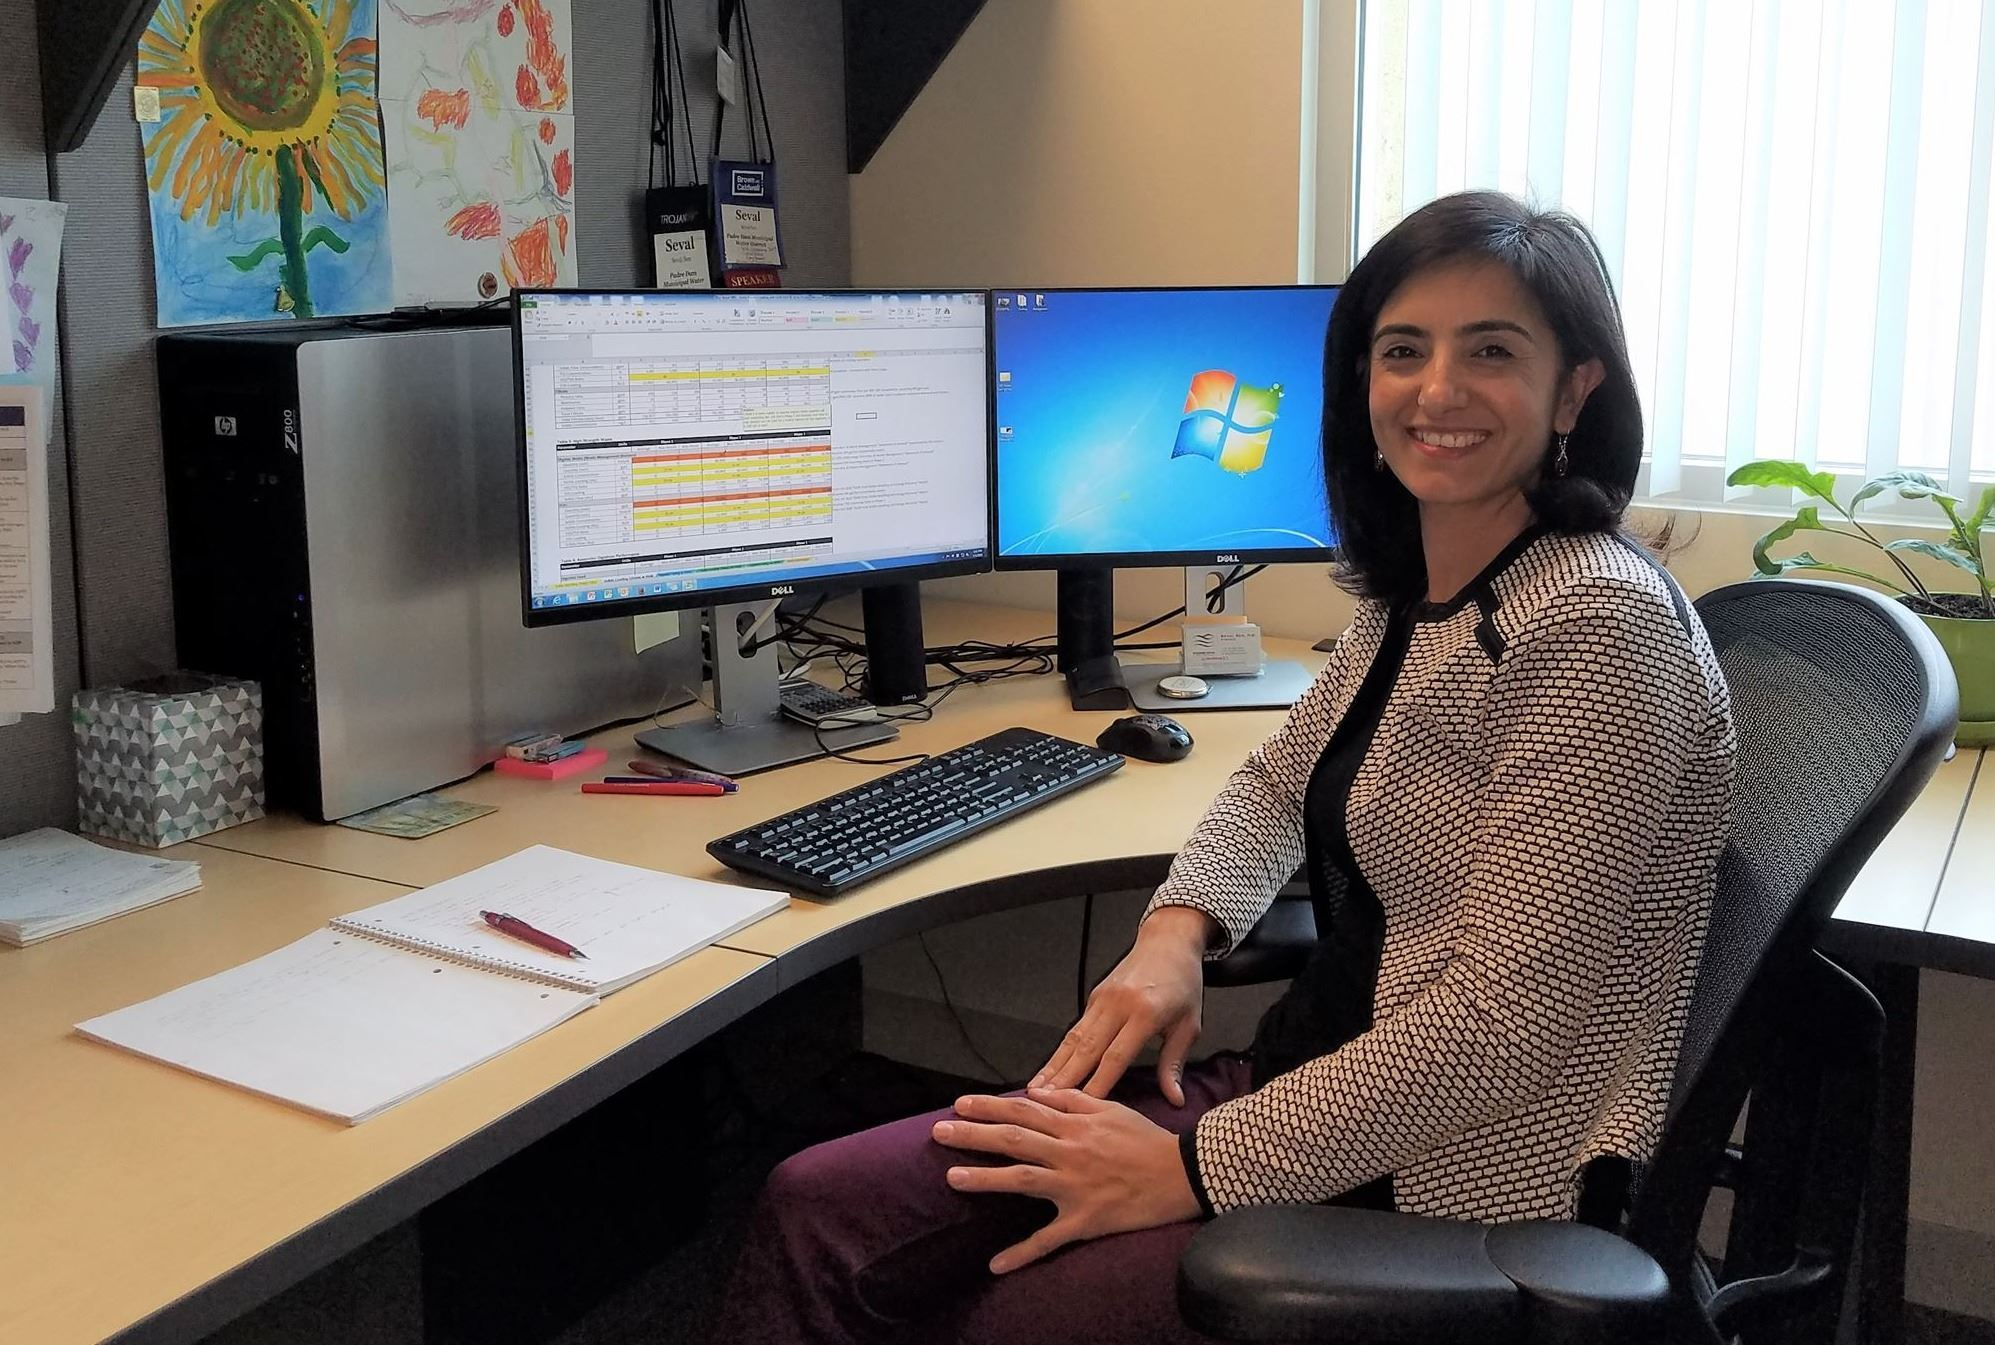 Woman sitting at computer smiling for camera